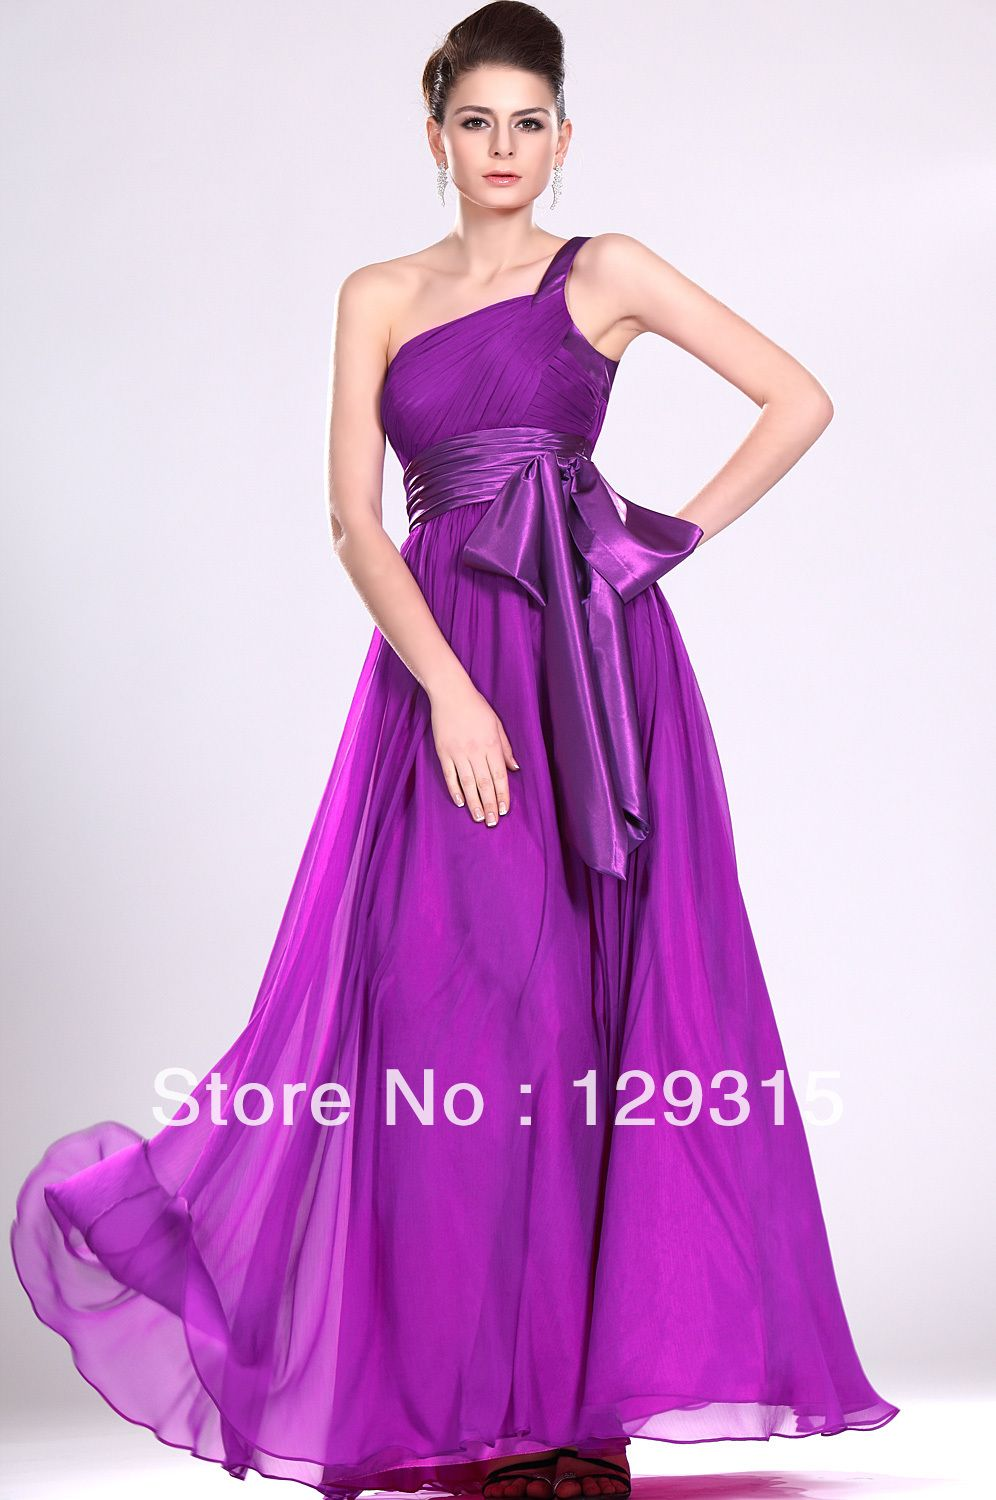 New arrivals semi formal dresses modest wedding dresses plus size